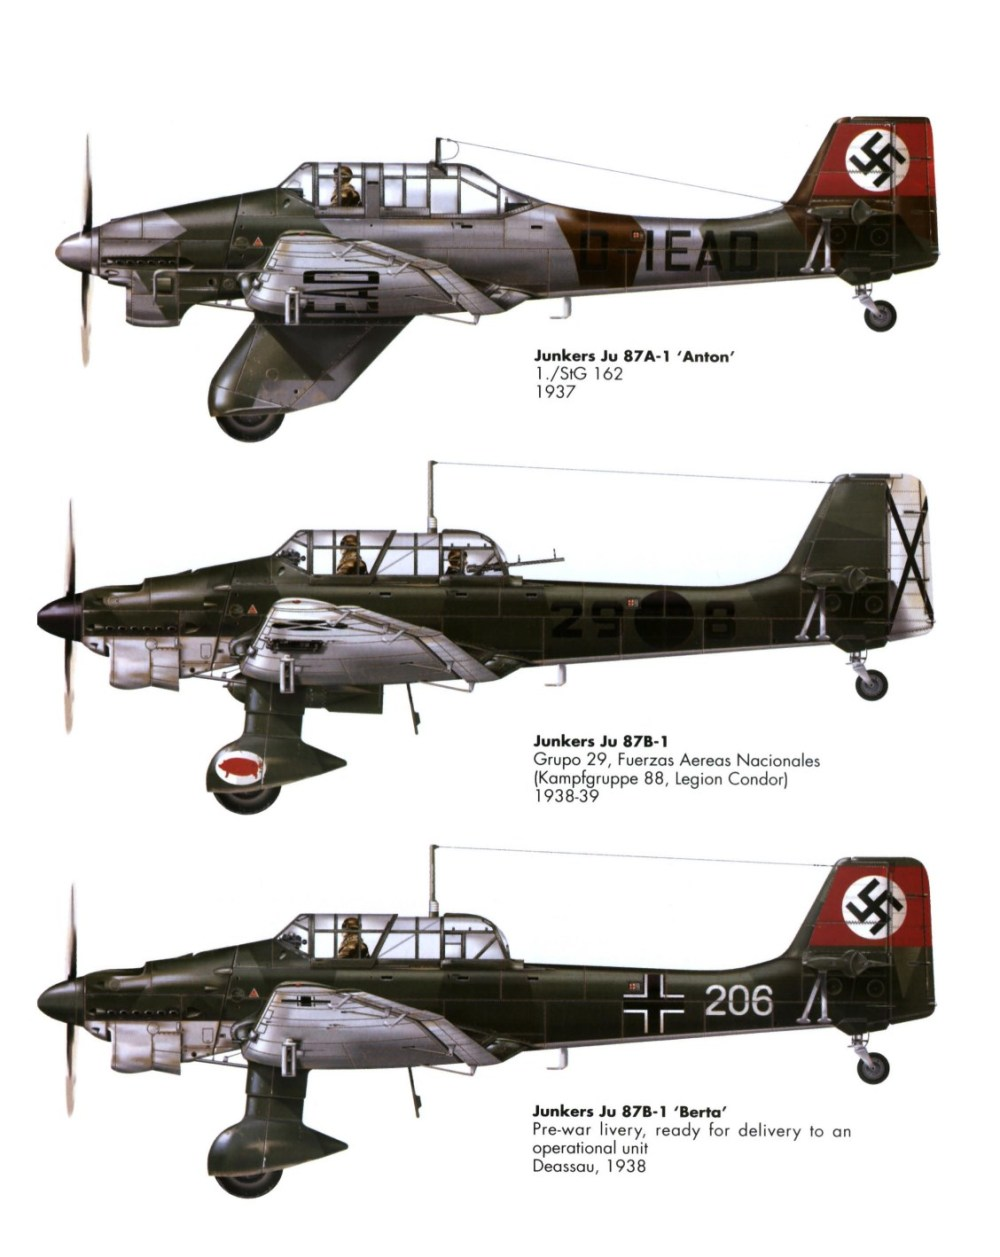 medium resolution of ironically the ju 87 was originally powered by the british rolls royce kestrel engine ten engines were ordered by